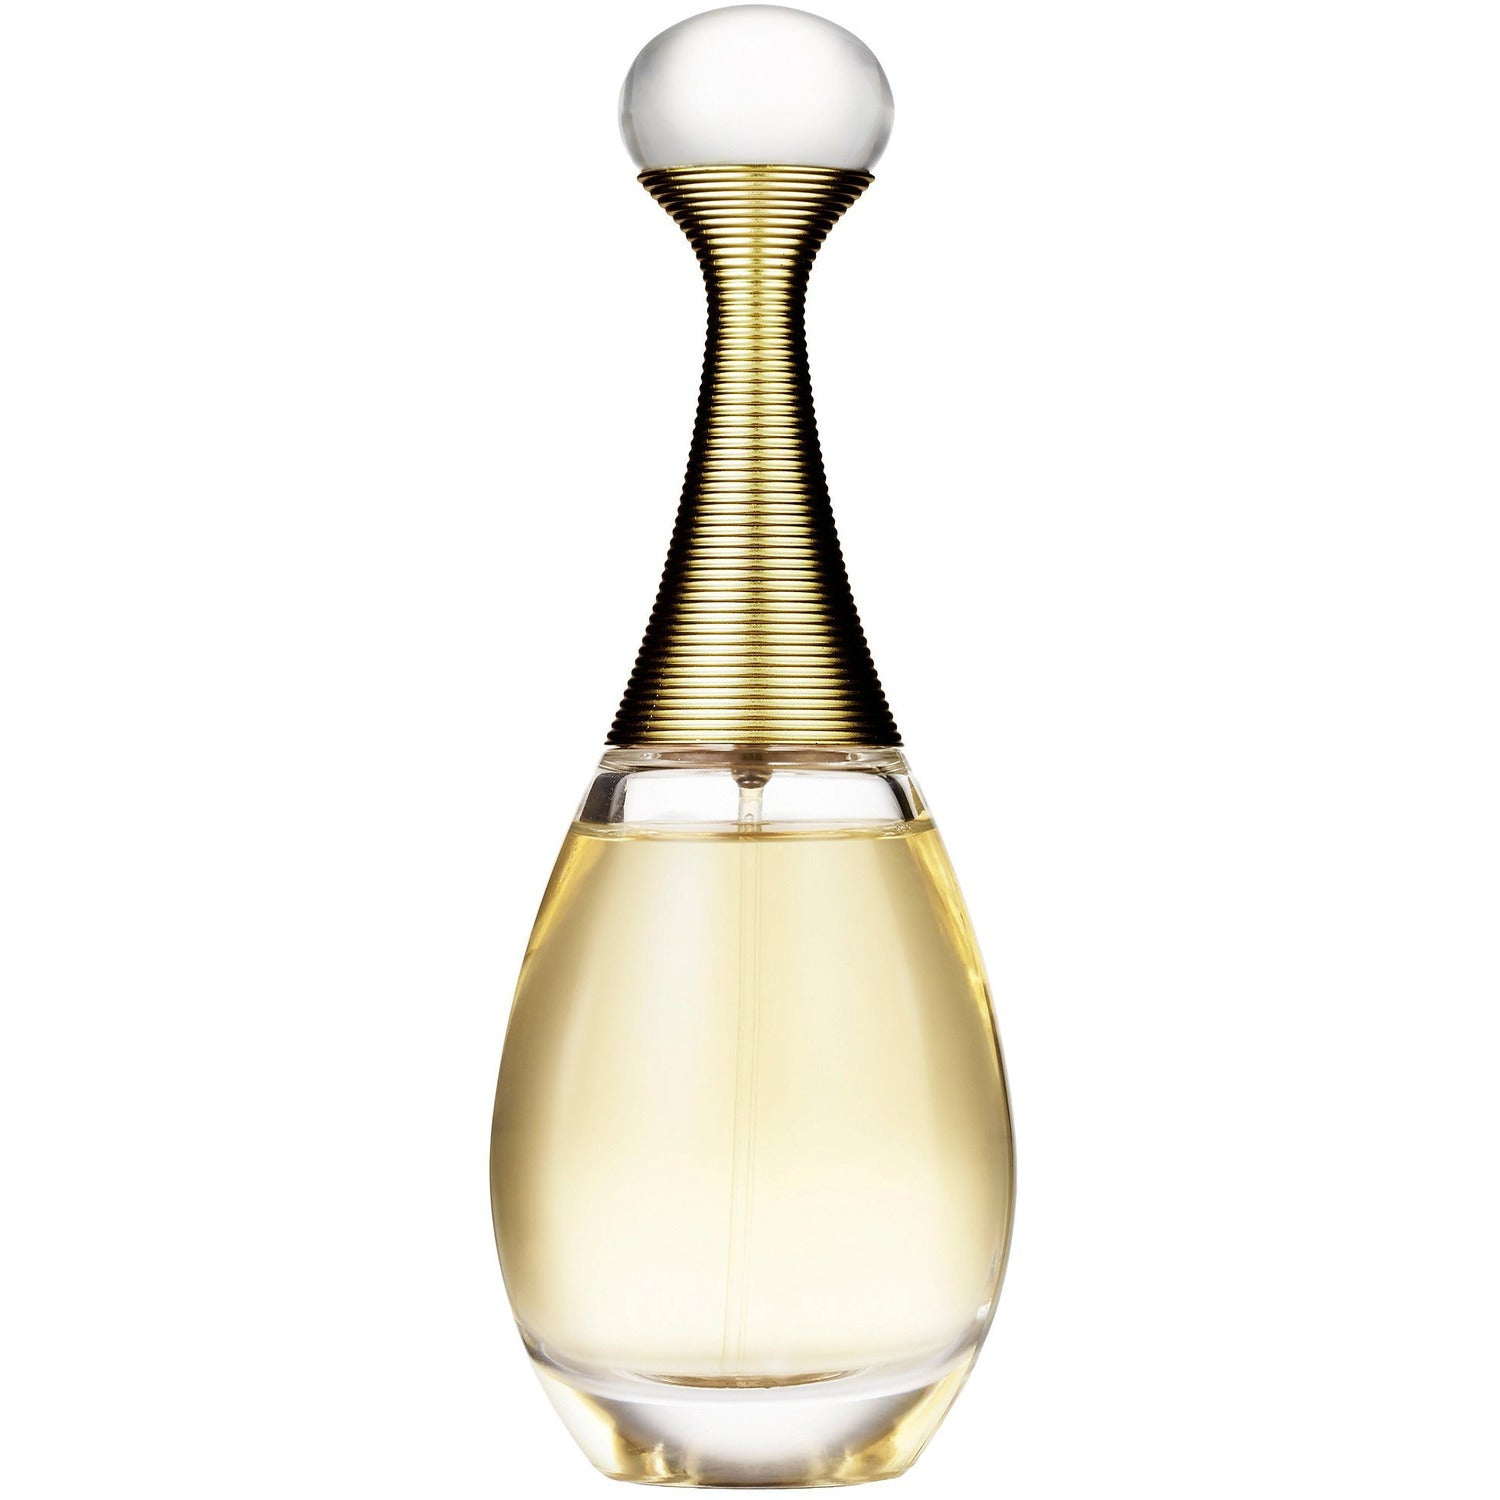 jadore-edt-christian-dior-jadore-women-edt-3-4-oz-3-3-new-tester